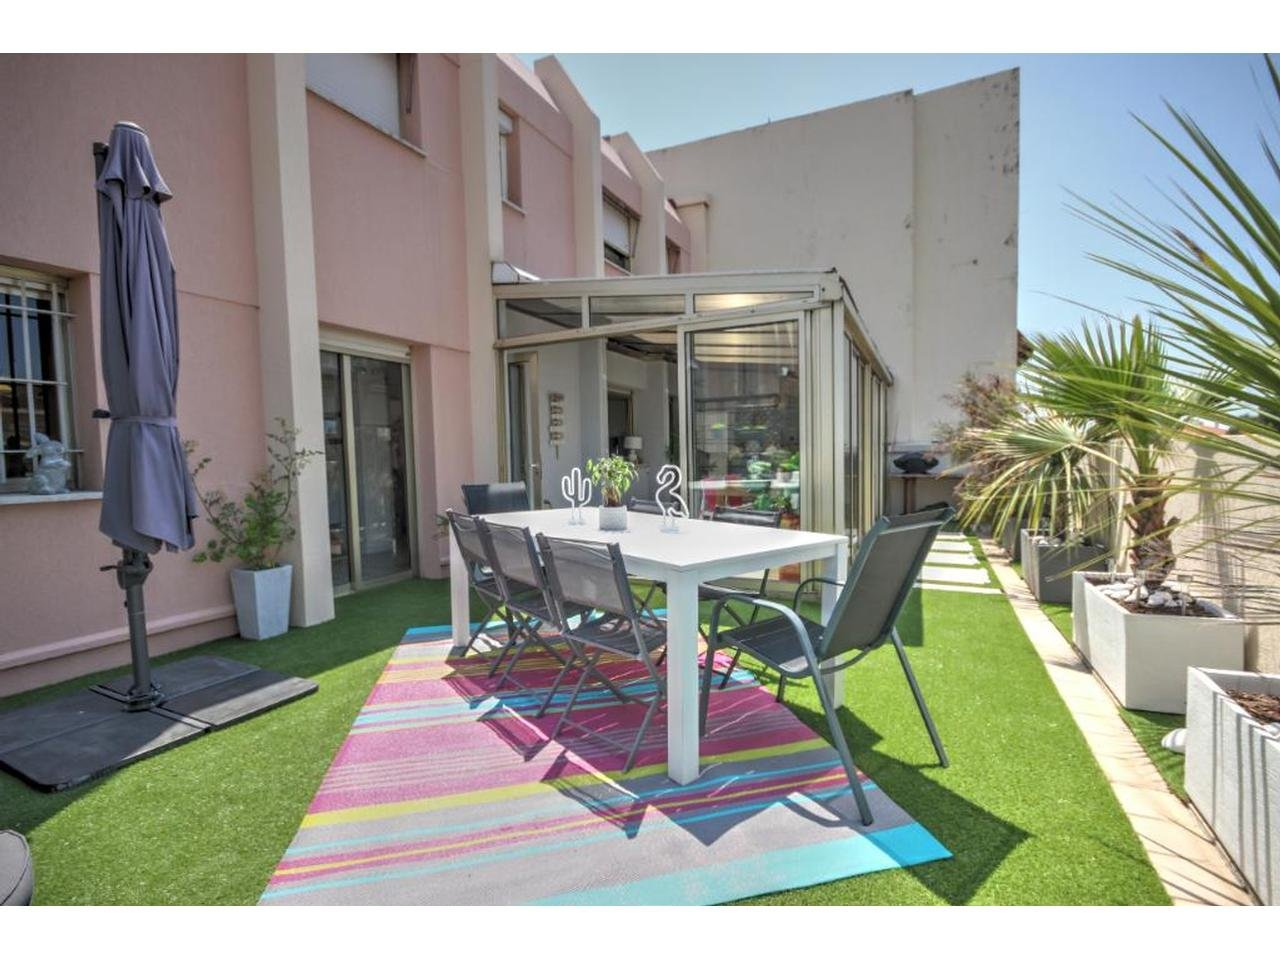 Sale Apartment - Le Cannet Mairie